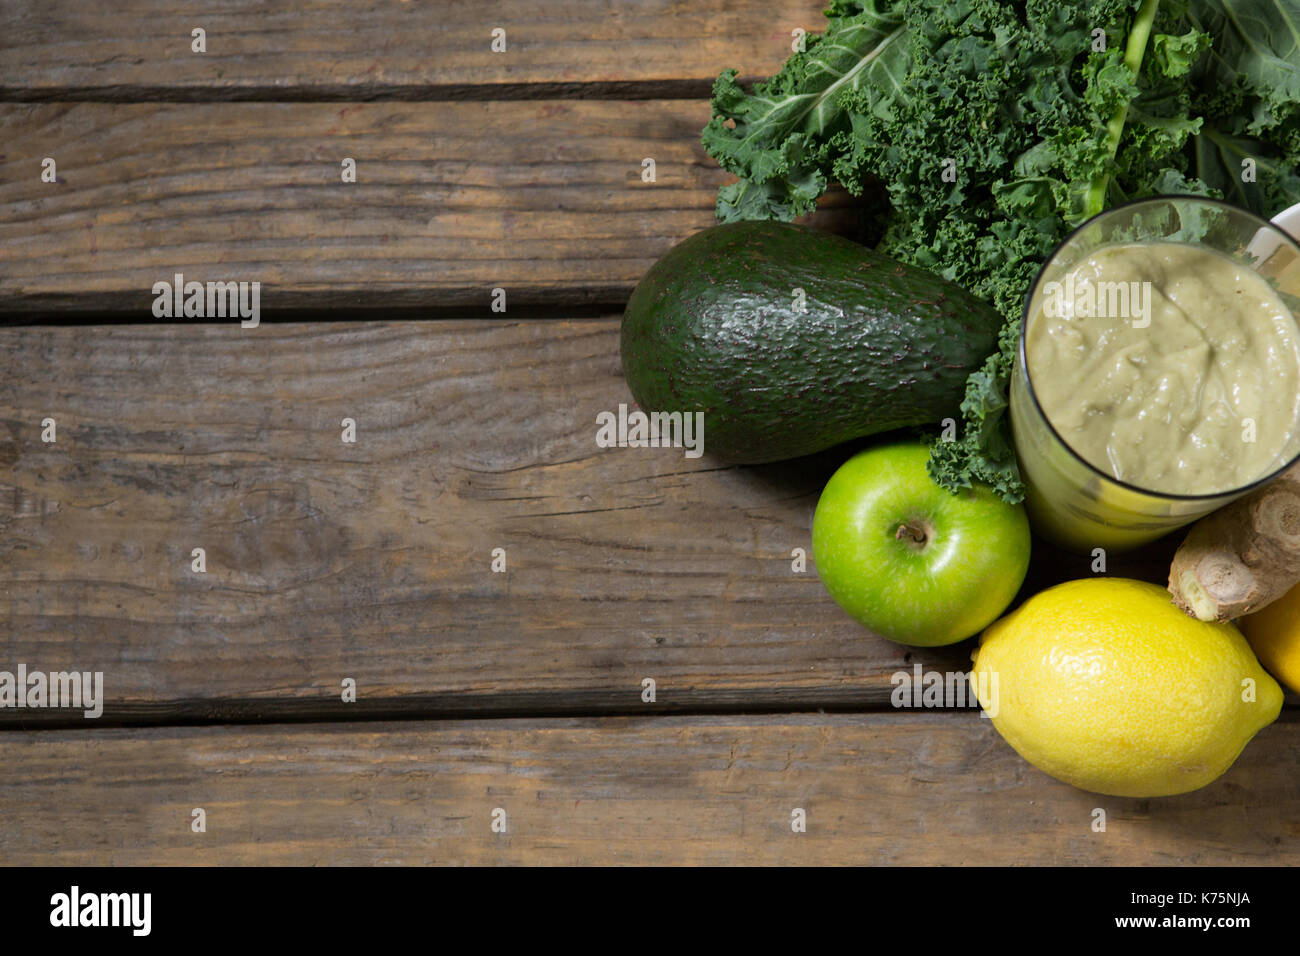 Overhead of various ingredients and paste on wooden table - Stock Image